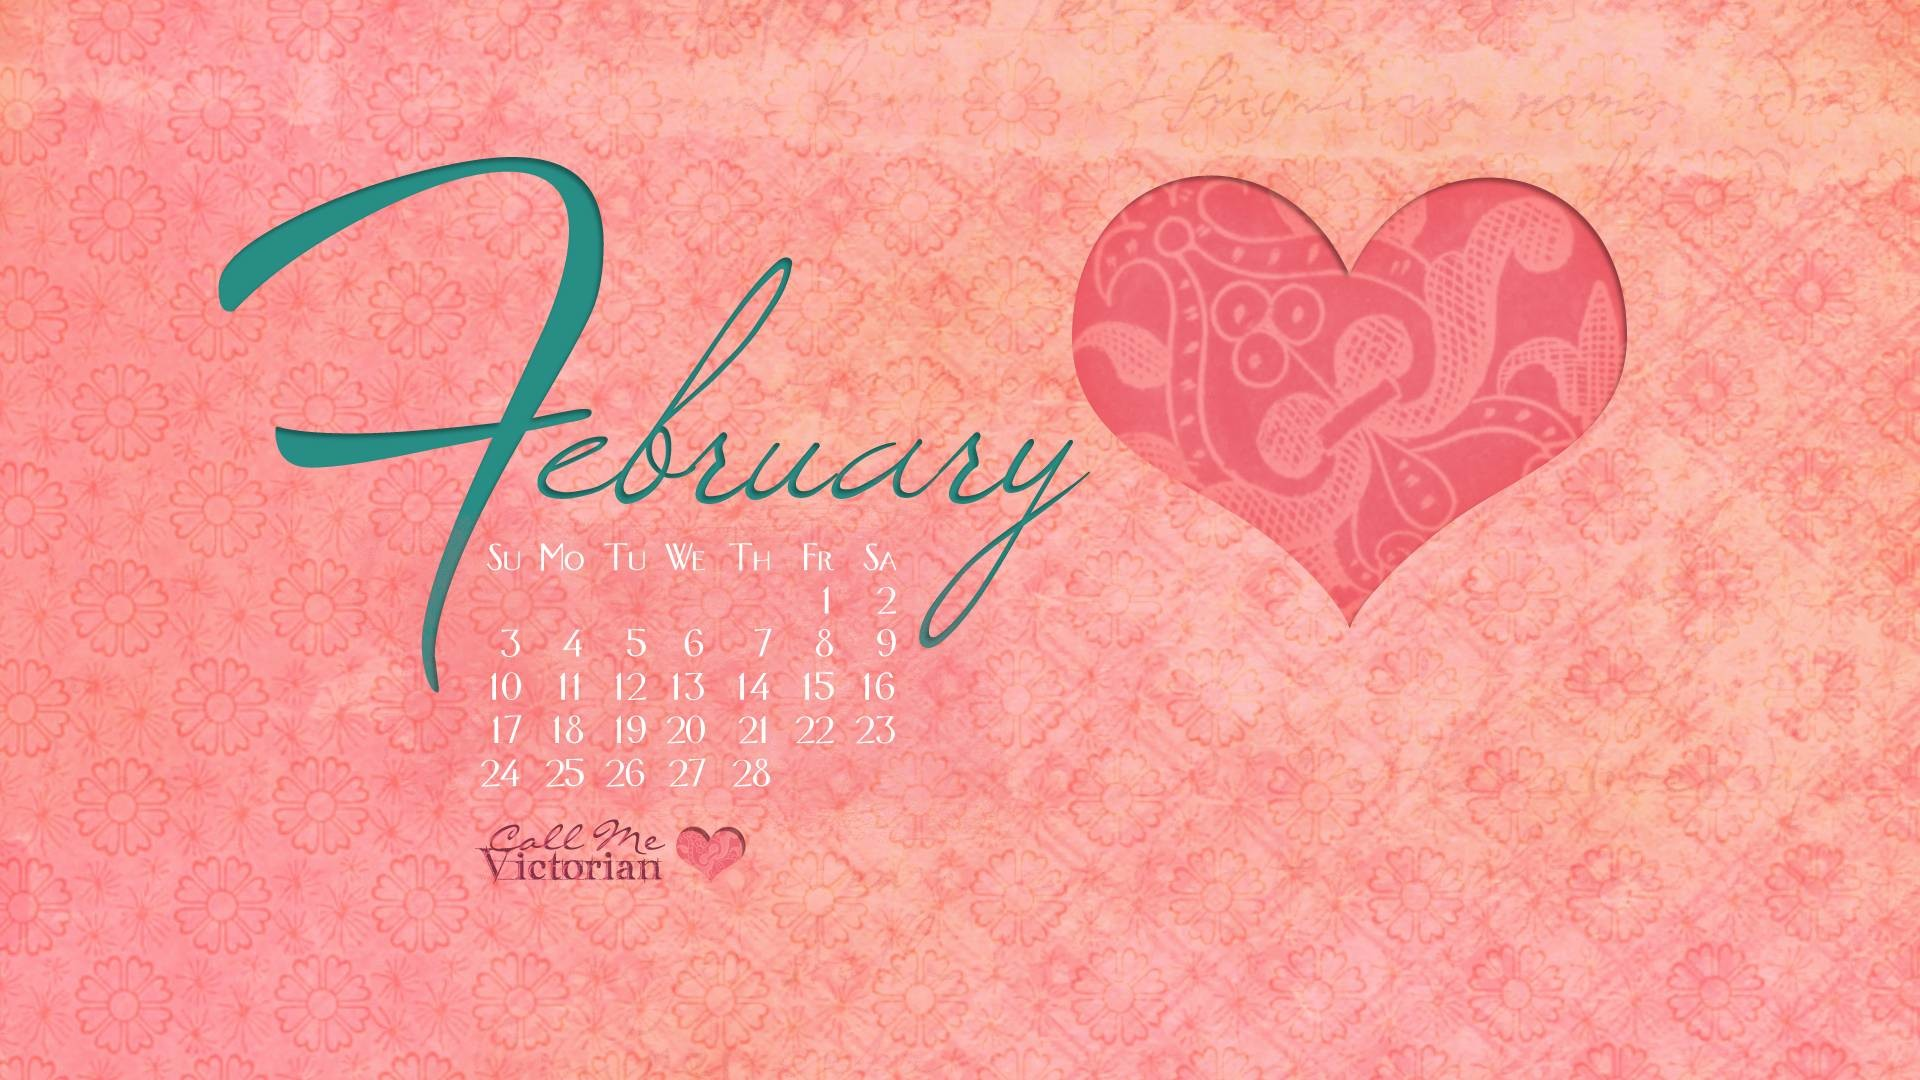 February Calendar Wallpaper Hd : February wallpaper calendar images